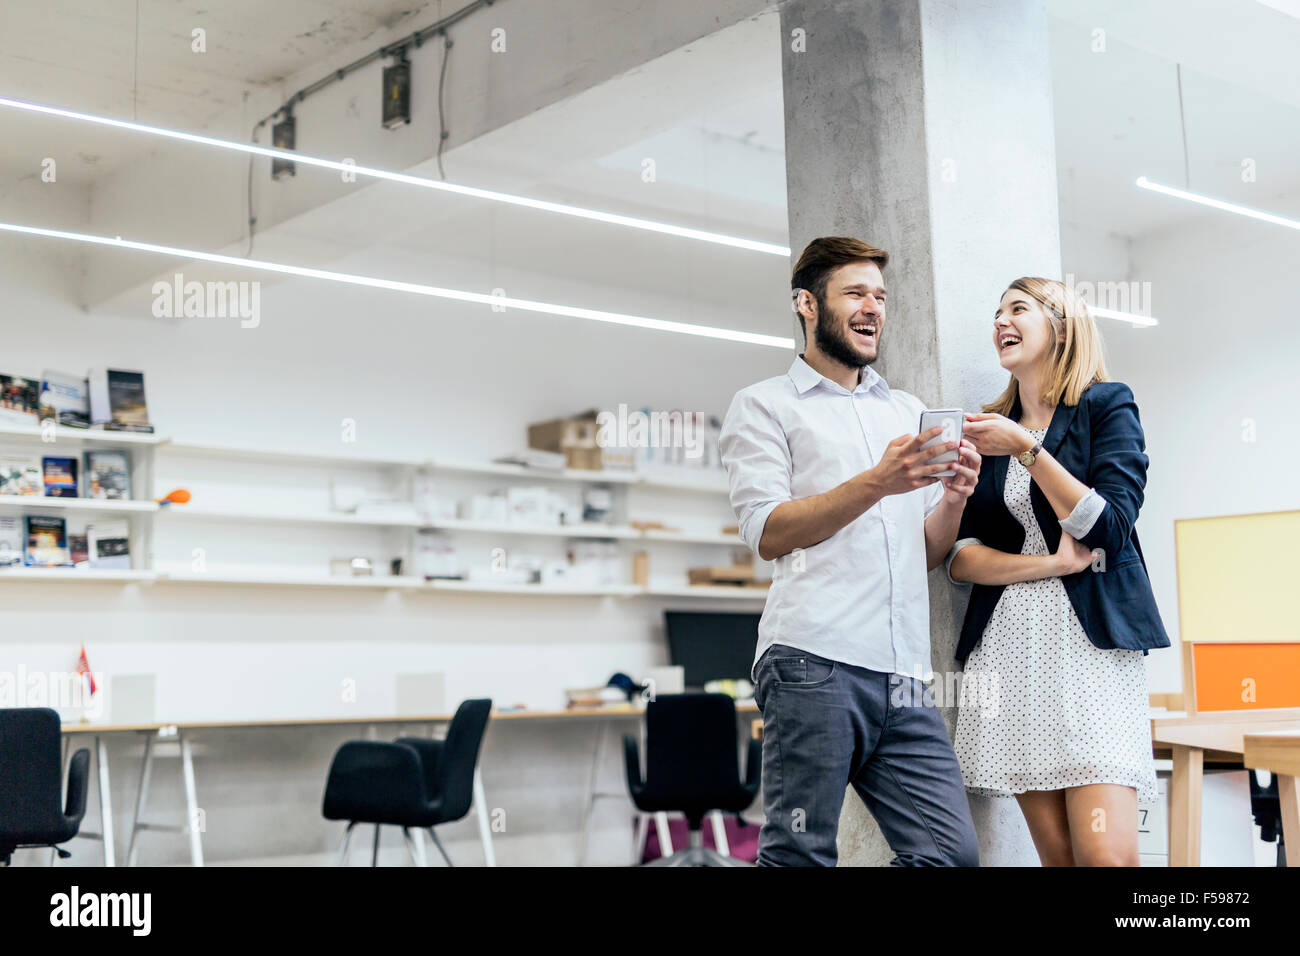 Two colleagues having a laugh in an office after look at the phone content - Stock Image